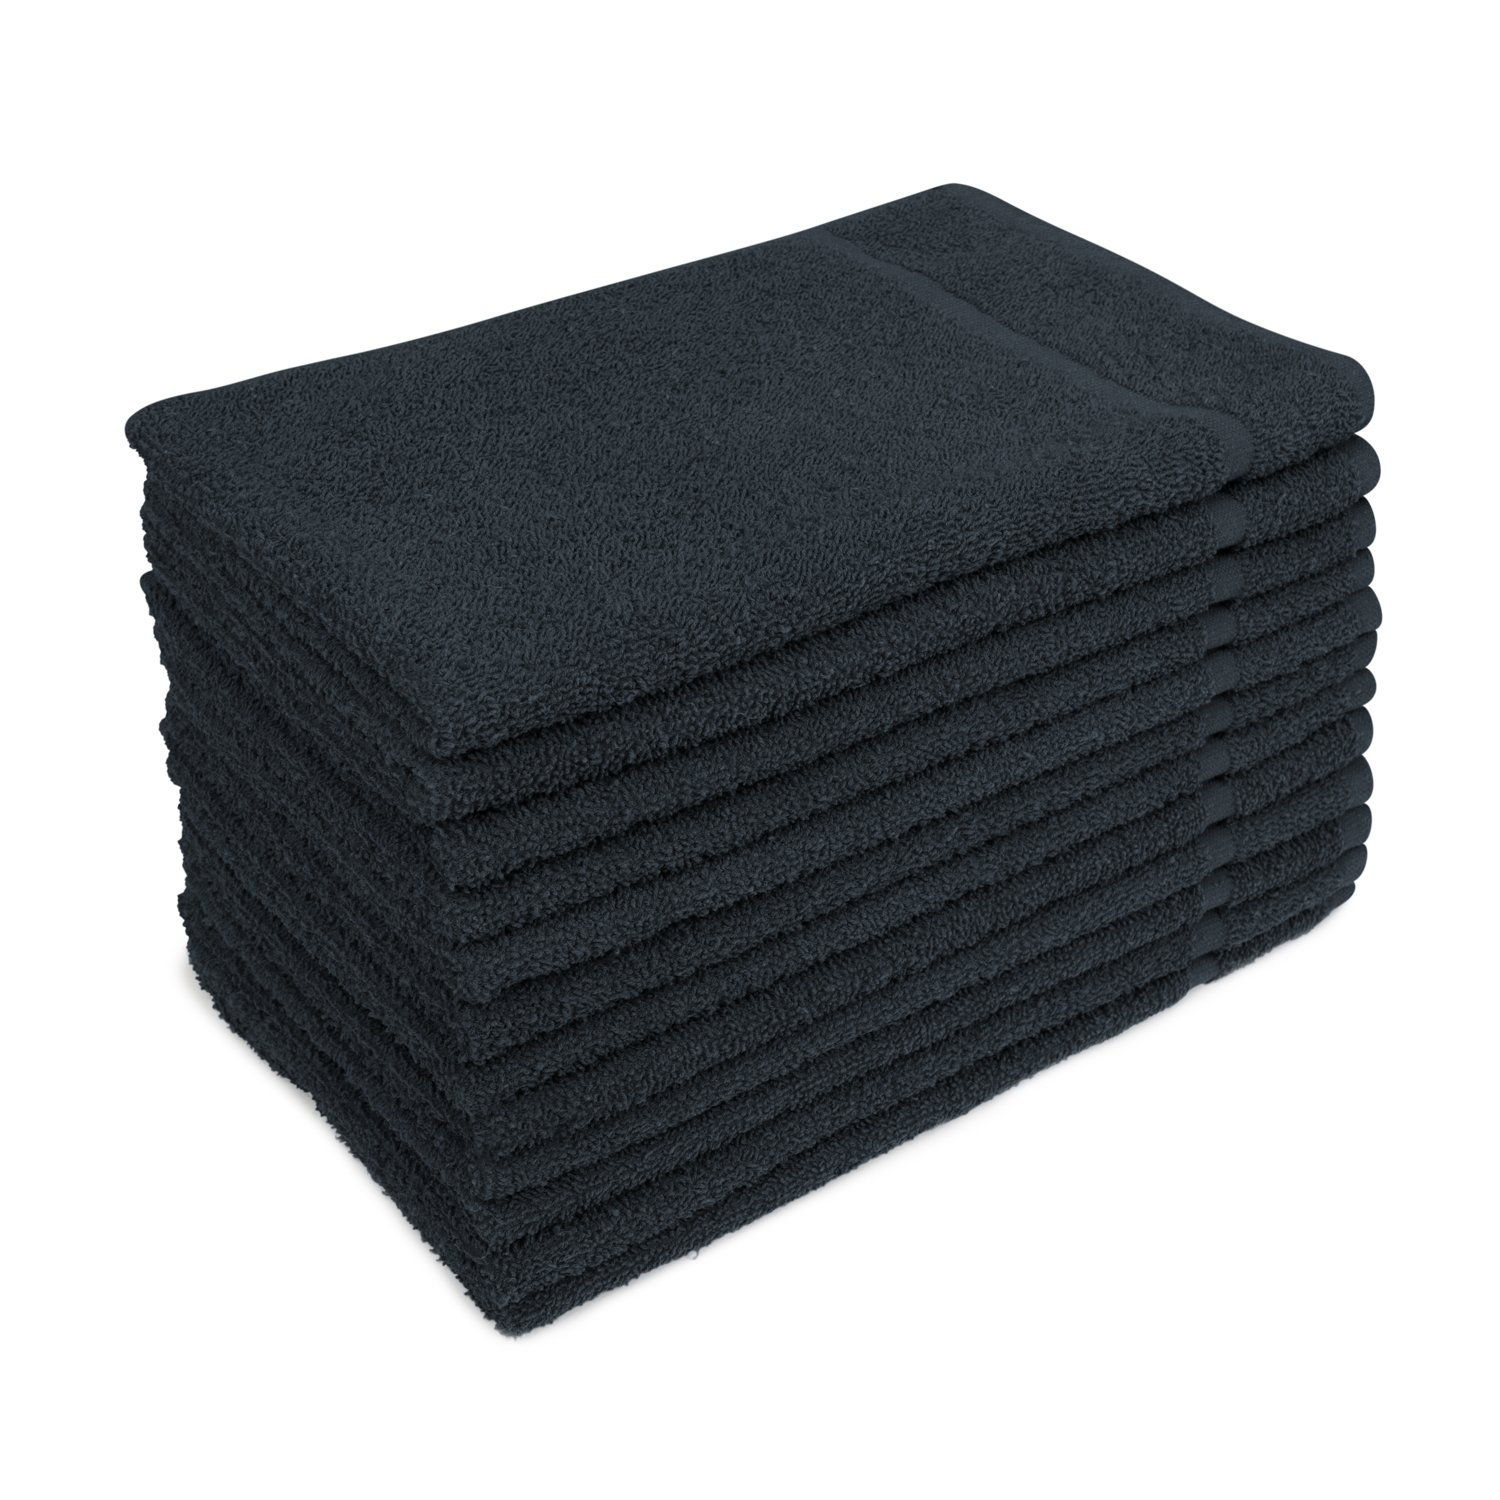 Altima 16'' x 27'' Black Bleach Safe Salon Hair Towels - 12 Pack